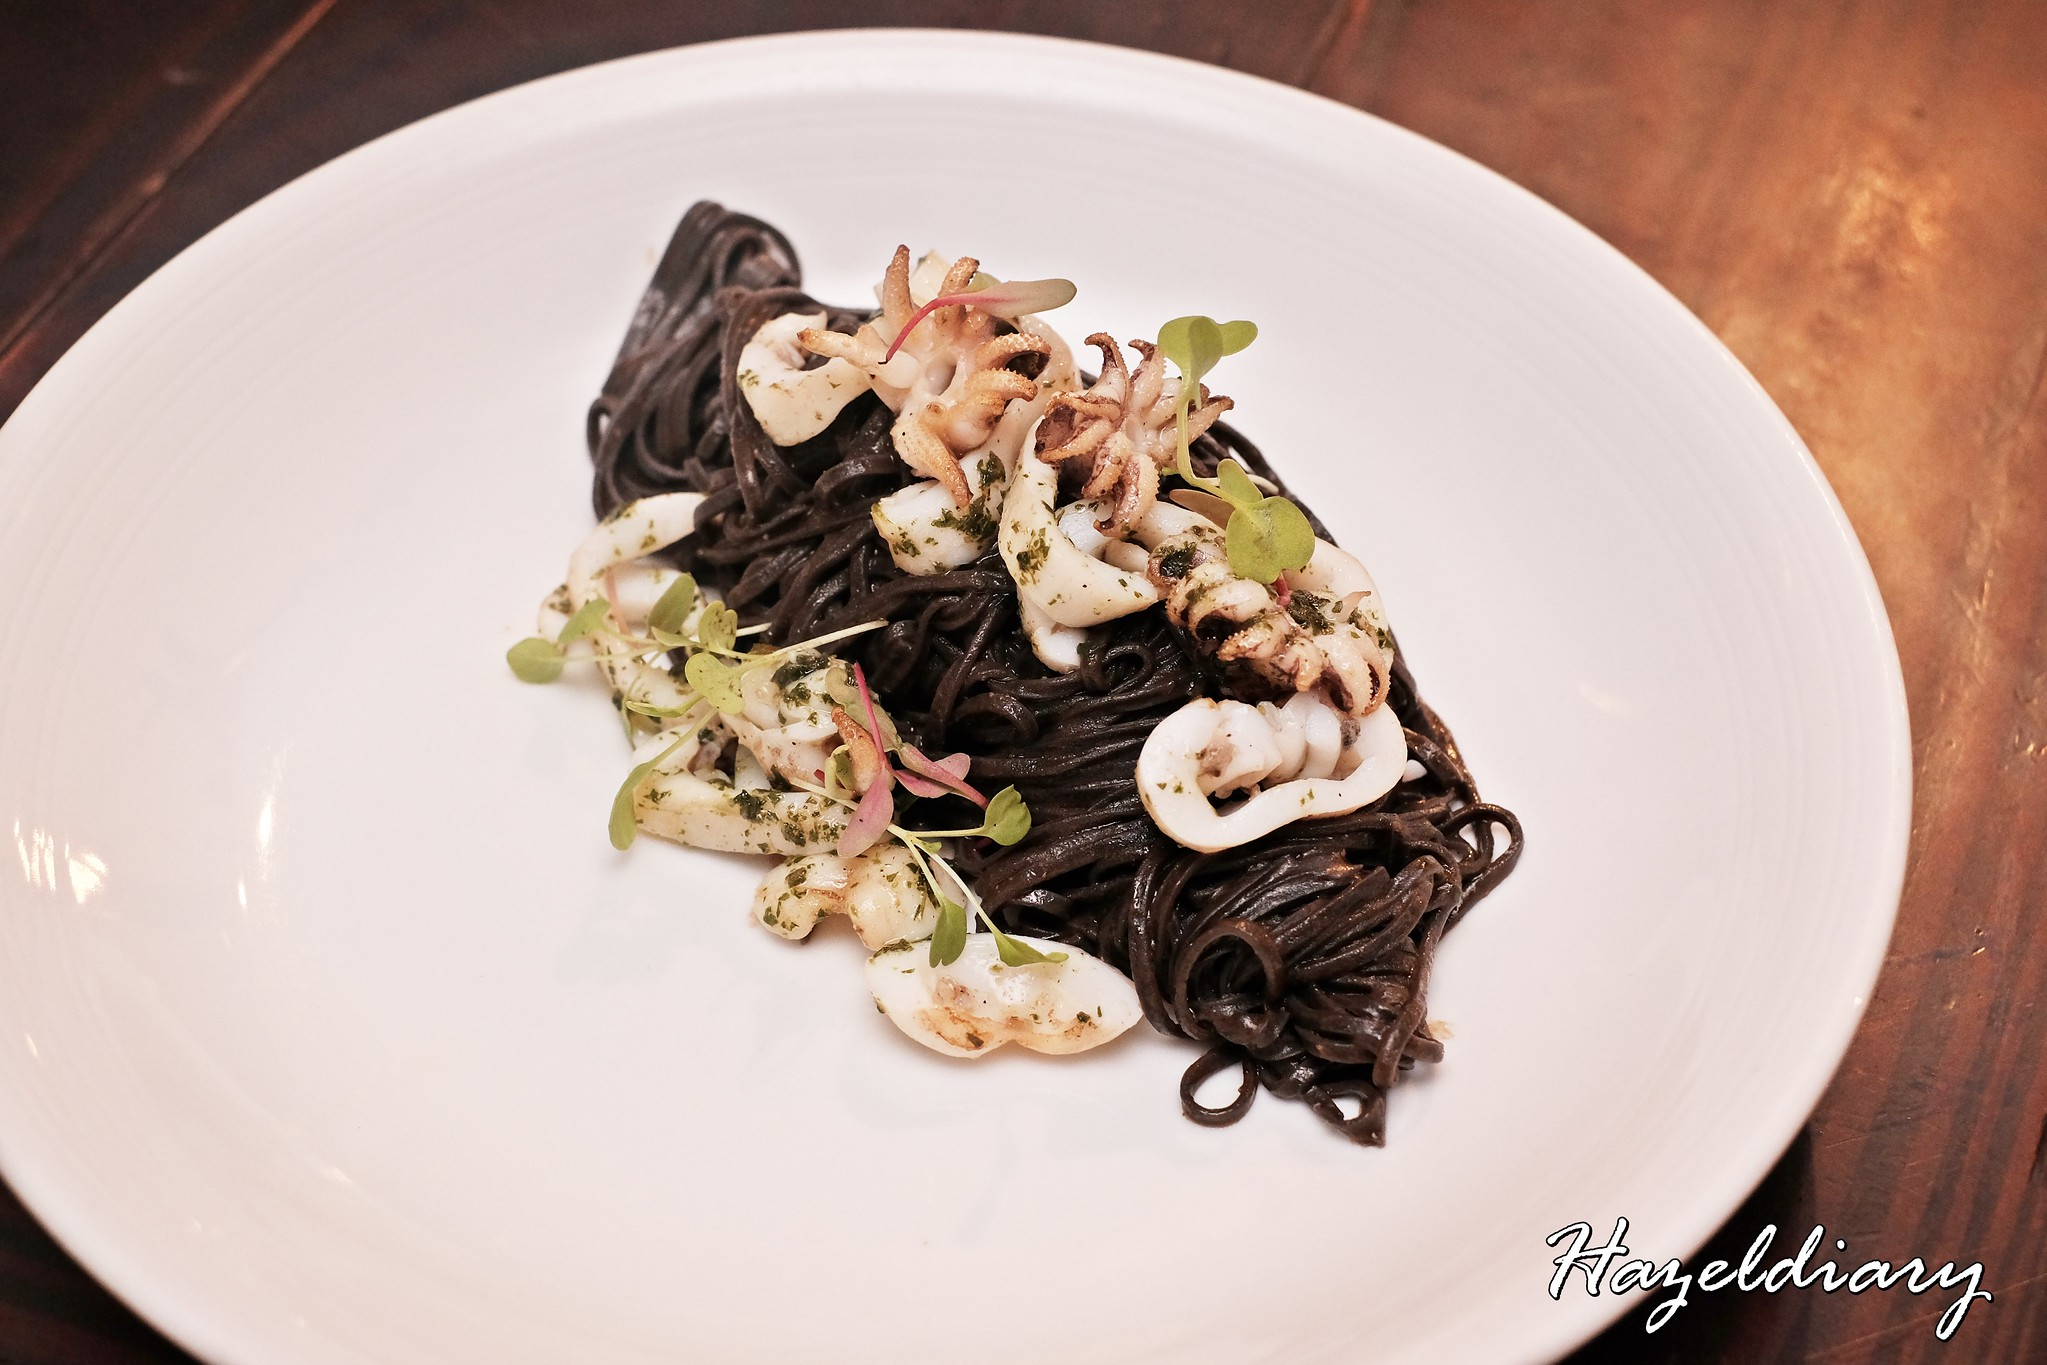 SONS-Squid-ink Tagliollini, Wild Cuttlefish & Orange Salmoriglio